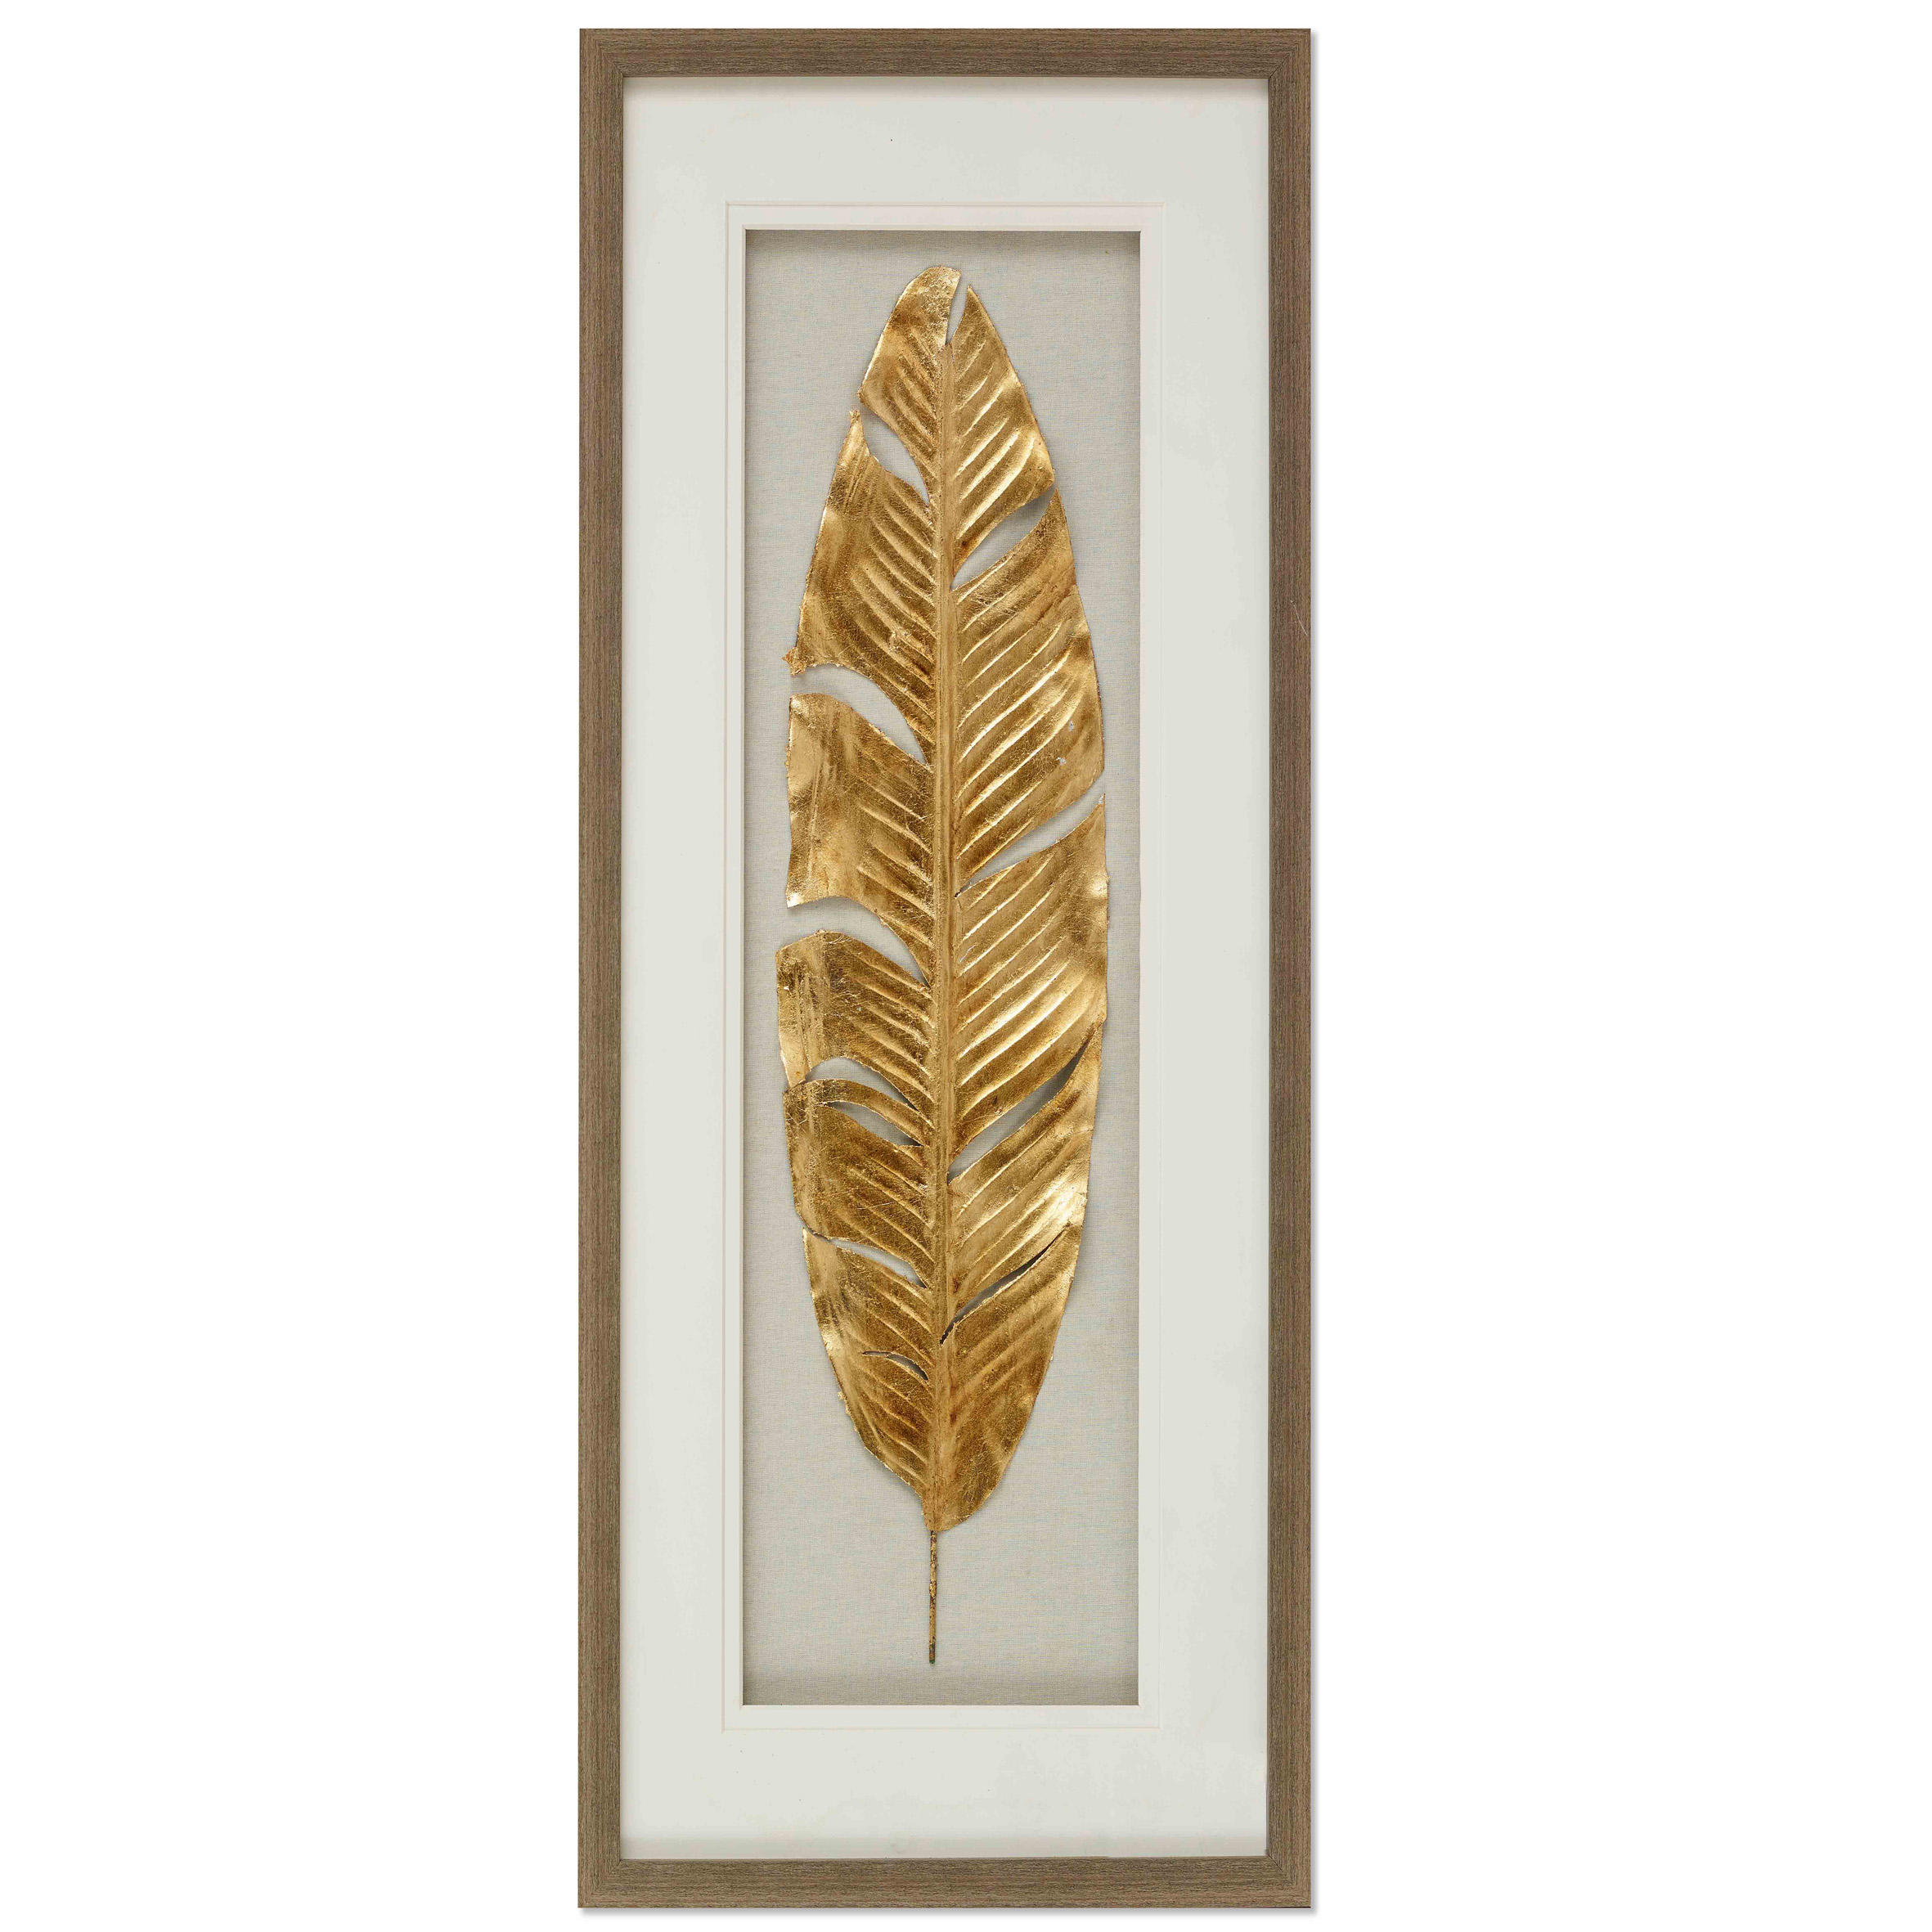 Modern Gold Leaf Design Shadow Box Wall Art for home hotel decoration